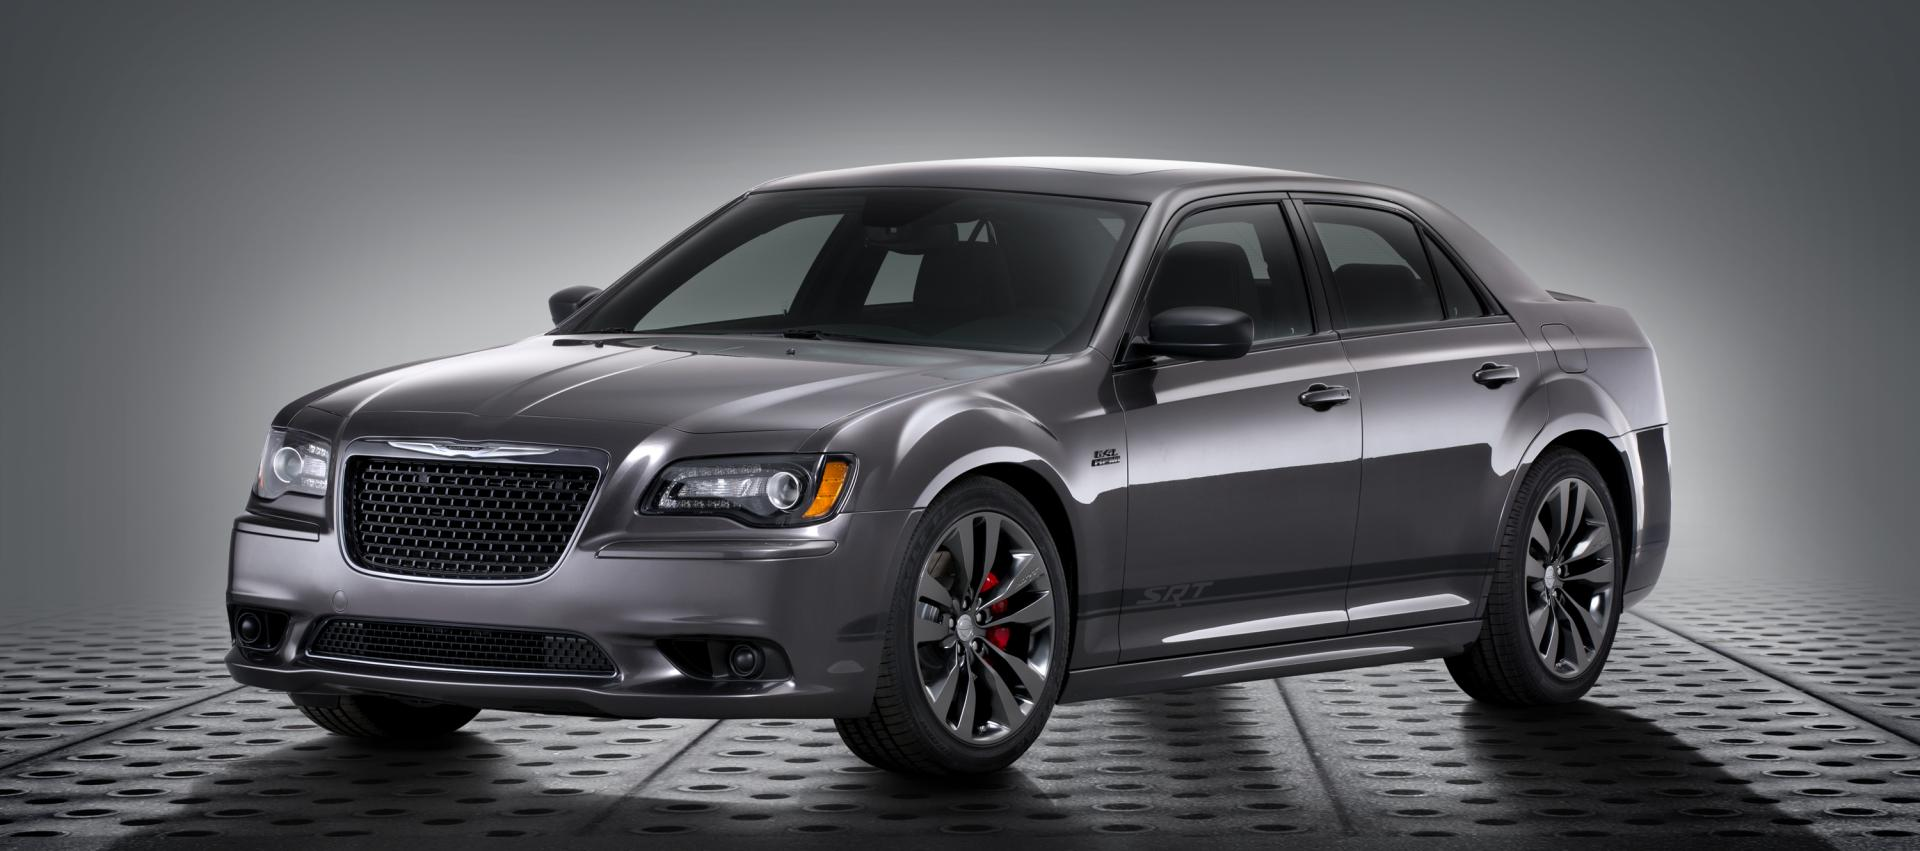 2014 chrysler 300 srt satin vapor edition. Black Bedroom Furniture Sets. Home Design Ideas